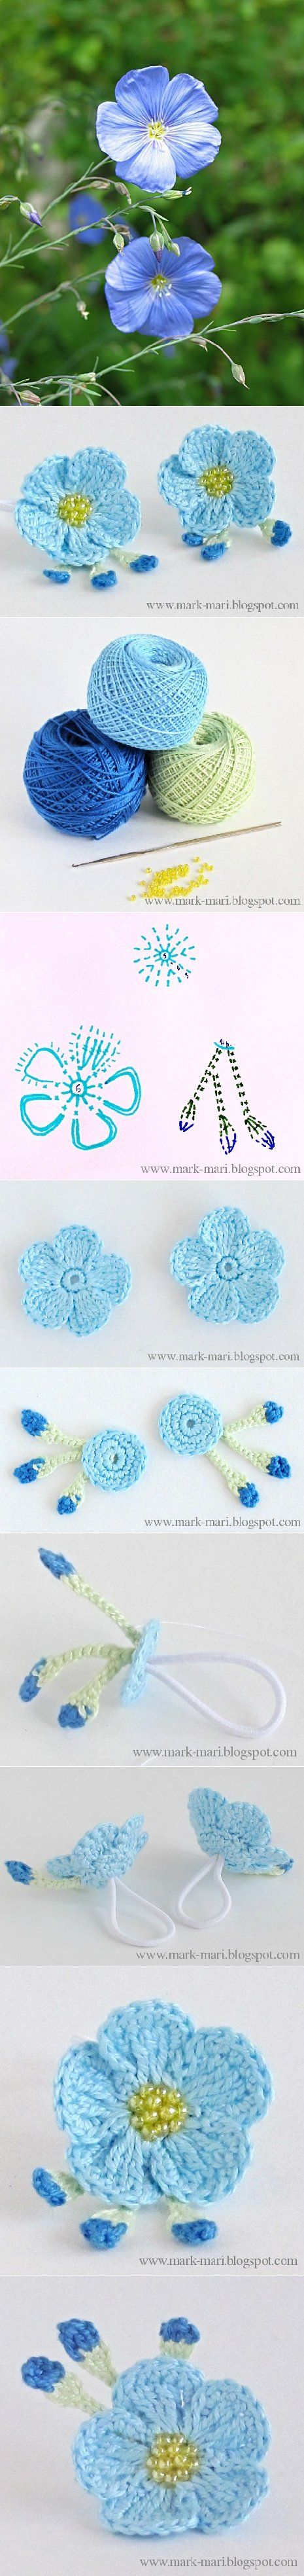 Crochet Flax-Blossoms - These pictures are complete when you click on them, but they are the only instructions.